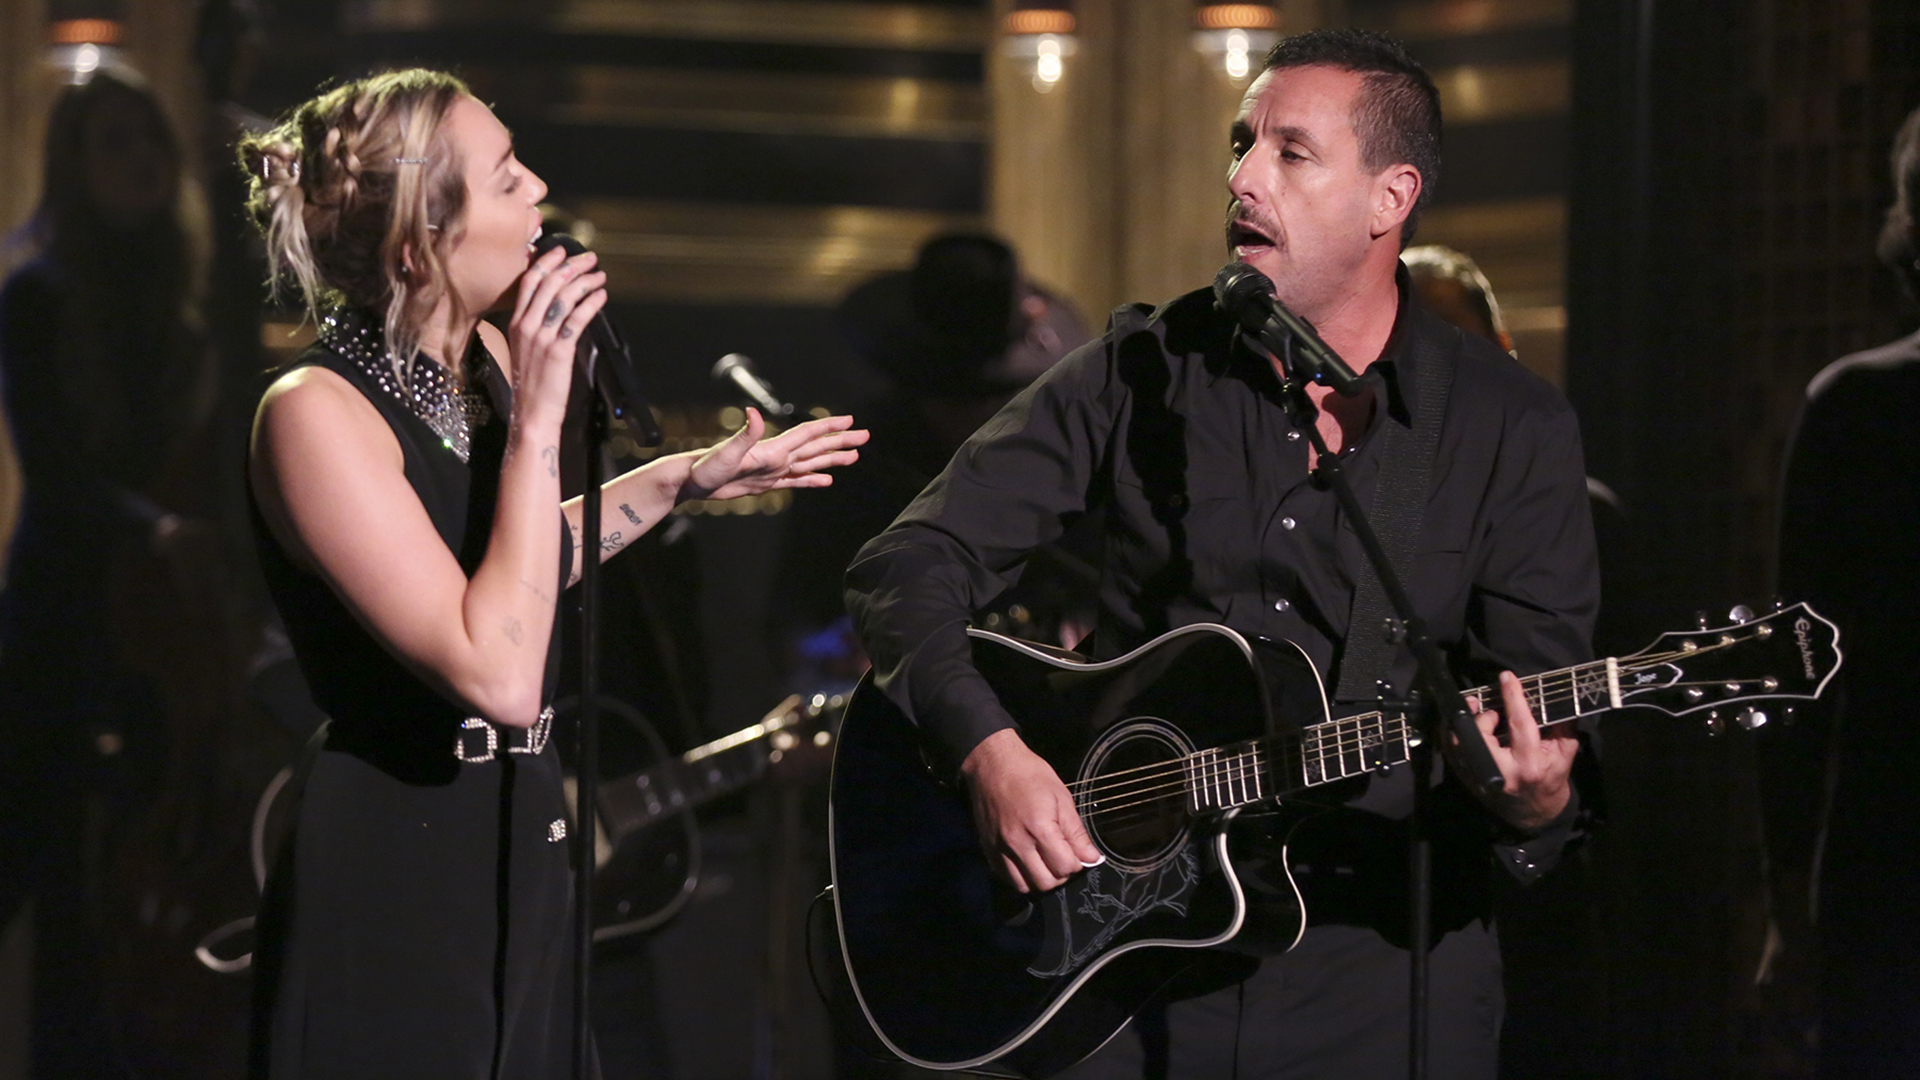 miley cyrus adam sandler perform moving las vegas tribute song on